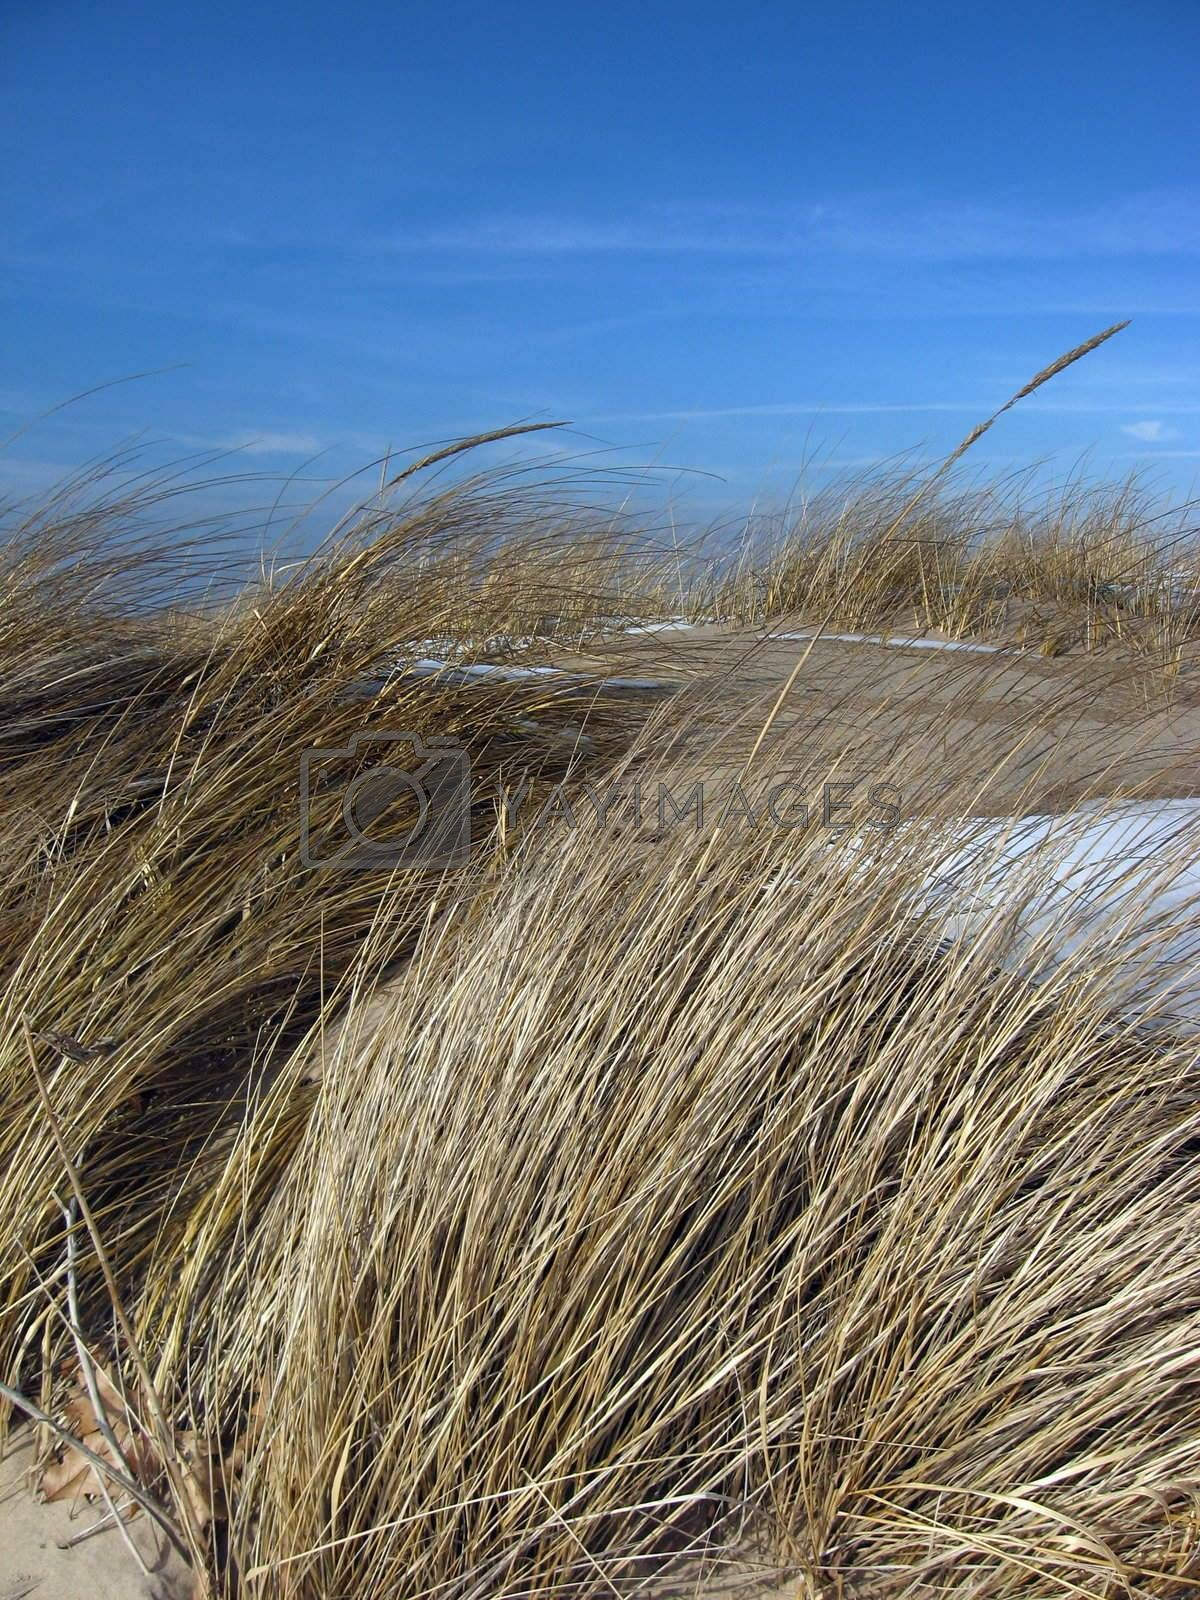 Beach Grass, Blowing in the Winter Wind by loongirl